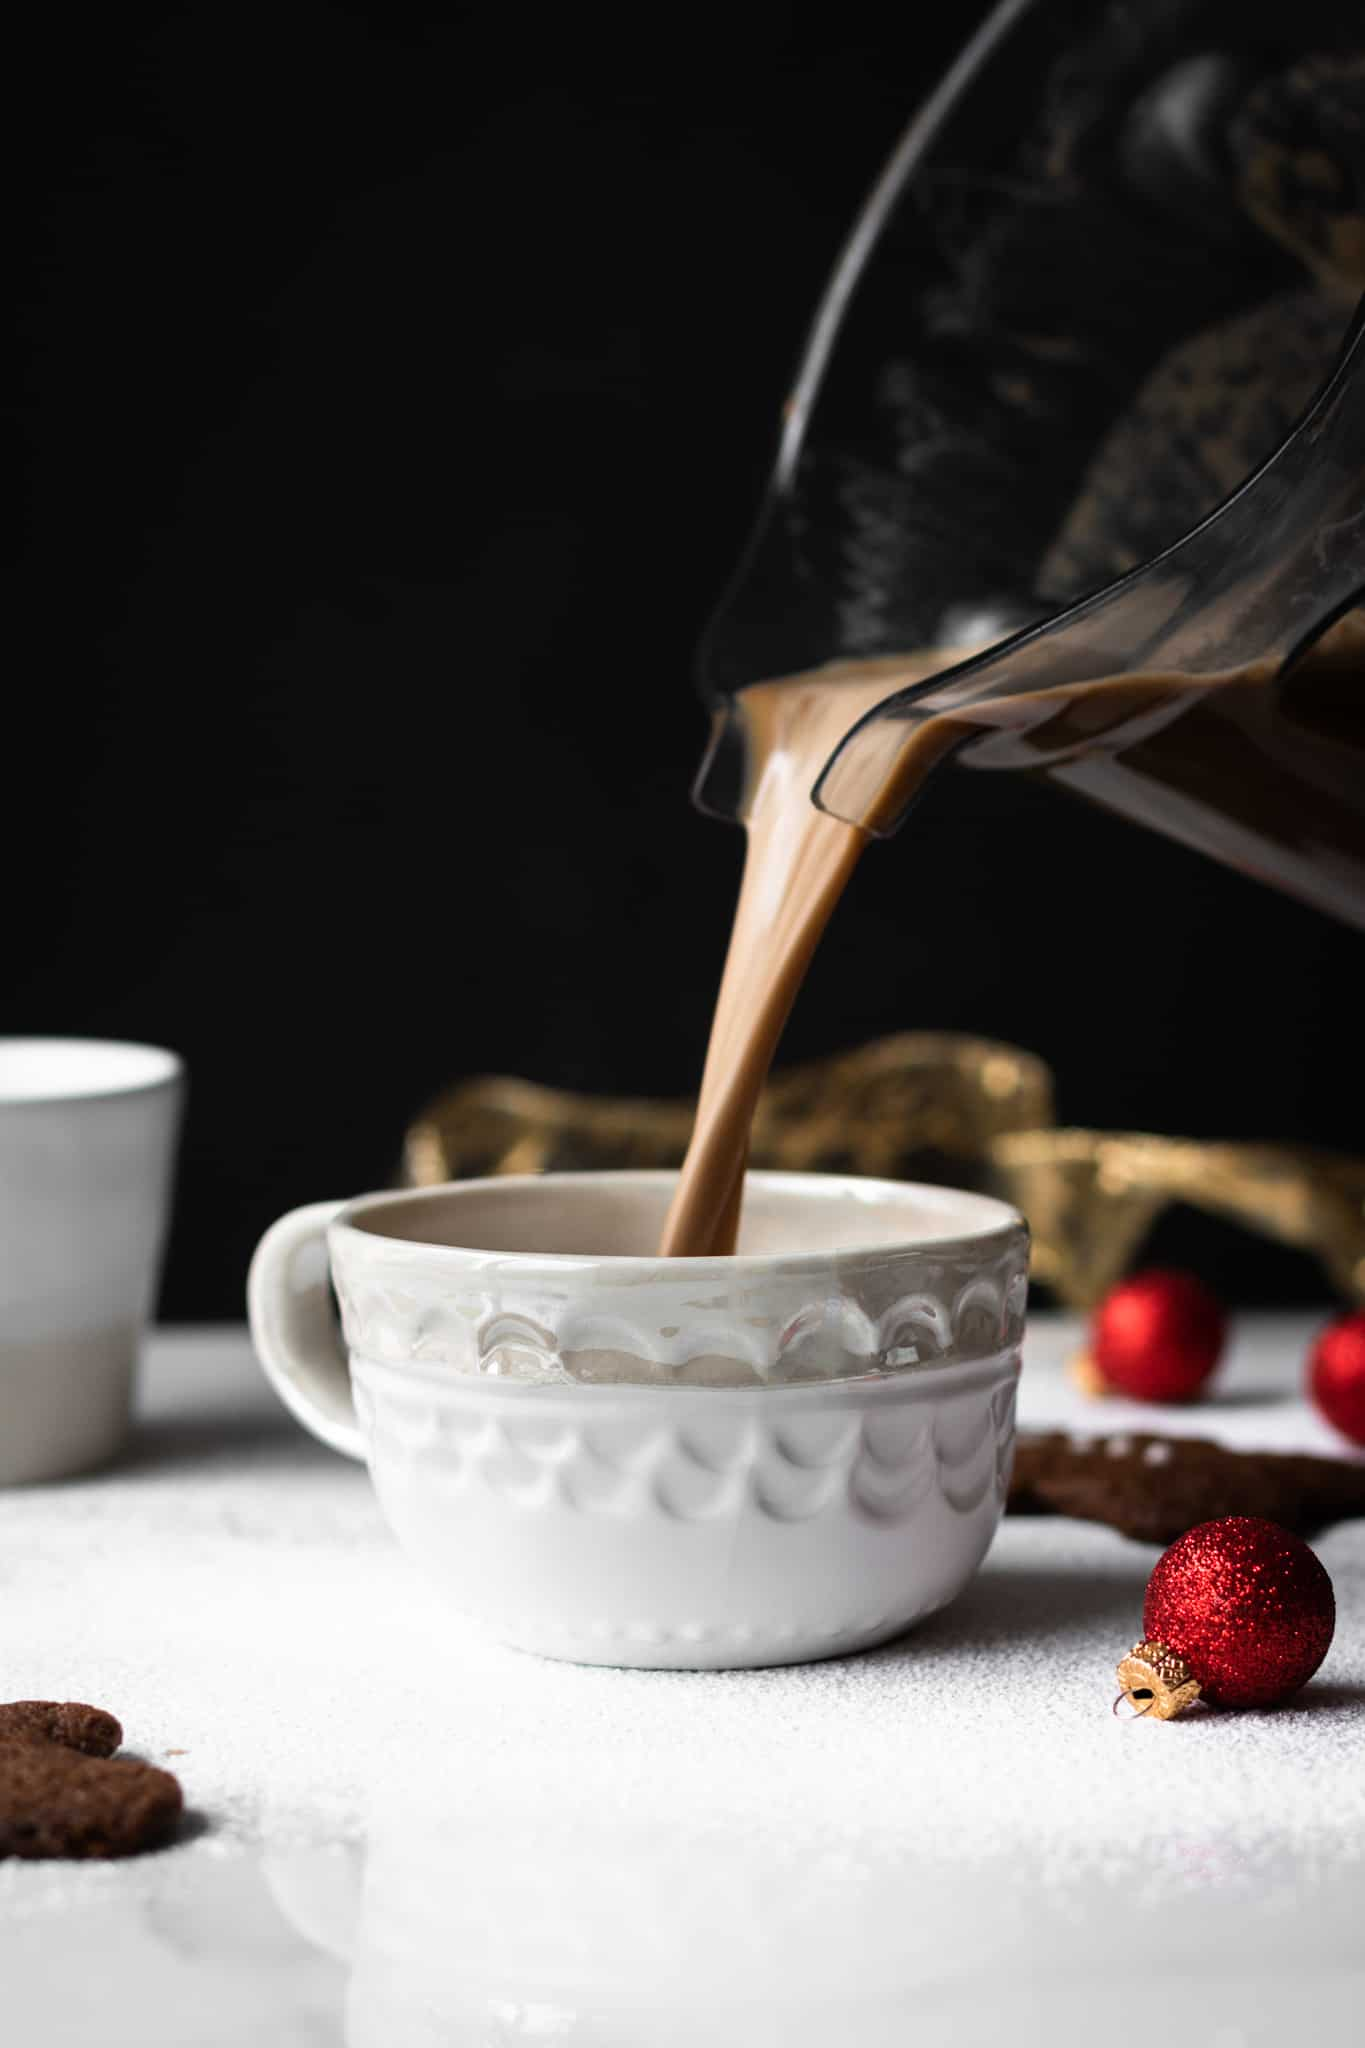 vegan gingerbread latte poured in a cup